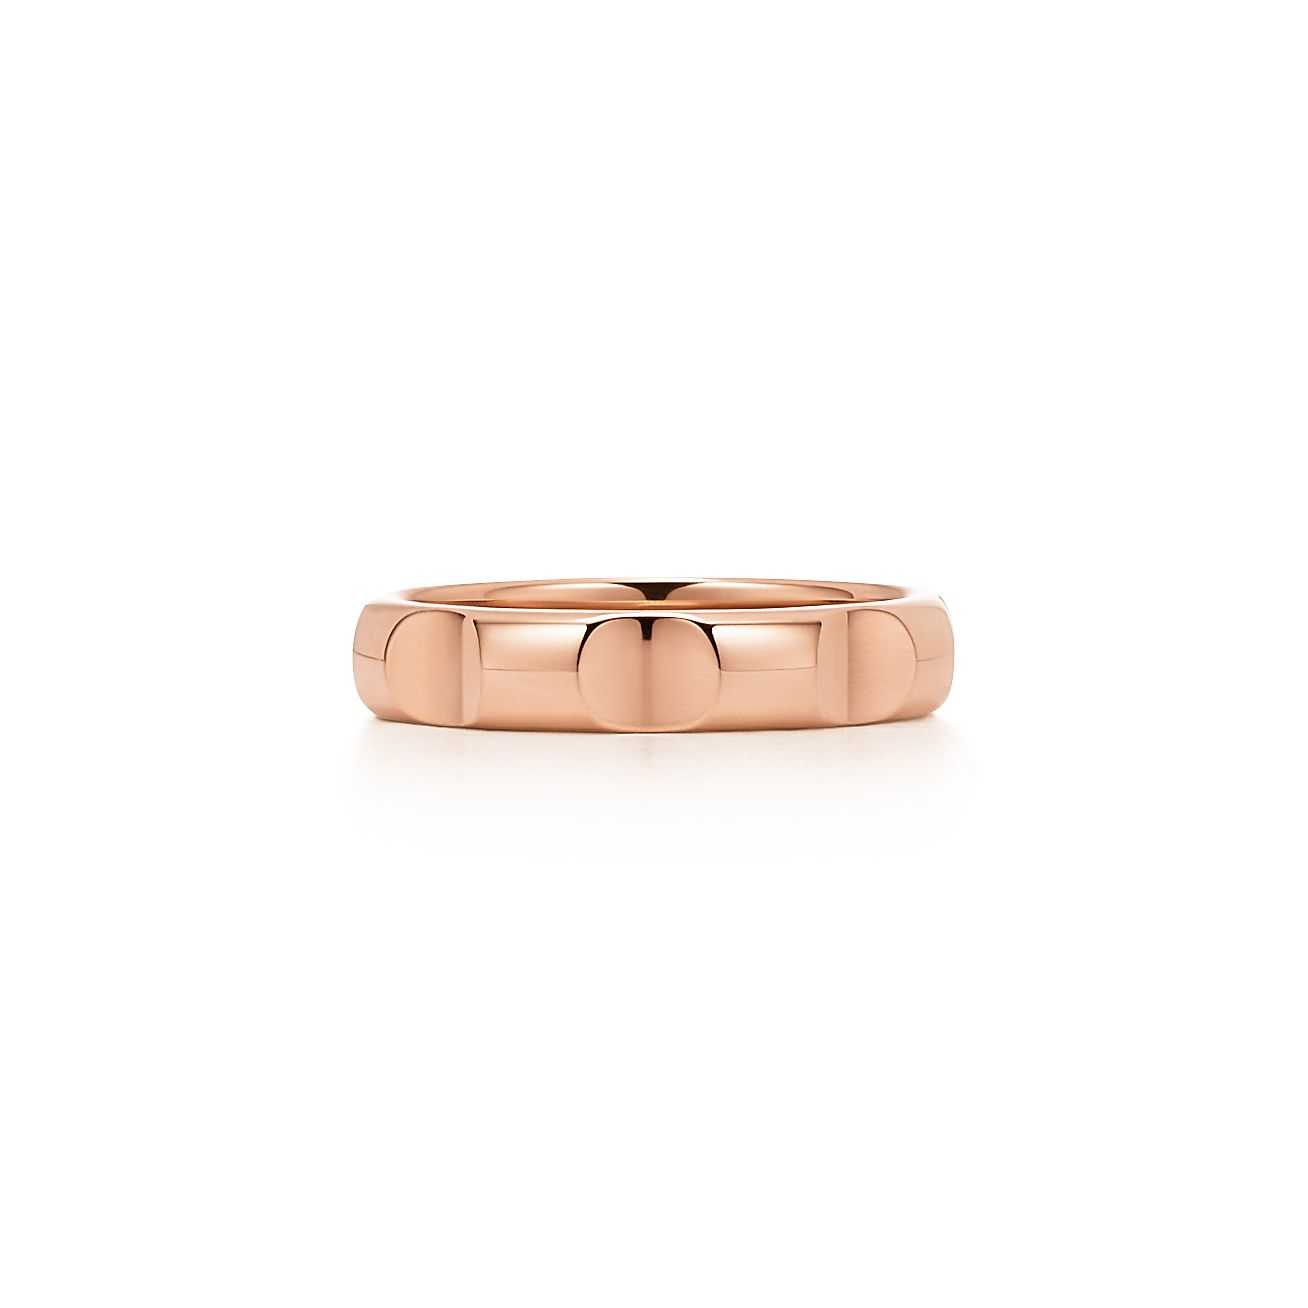 Palomas Graffiti love ring in 18k gold - Size 4 1/2 Tiffany & Co.